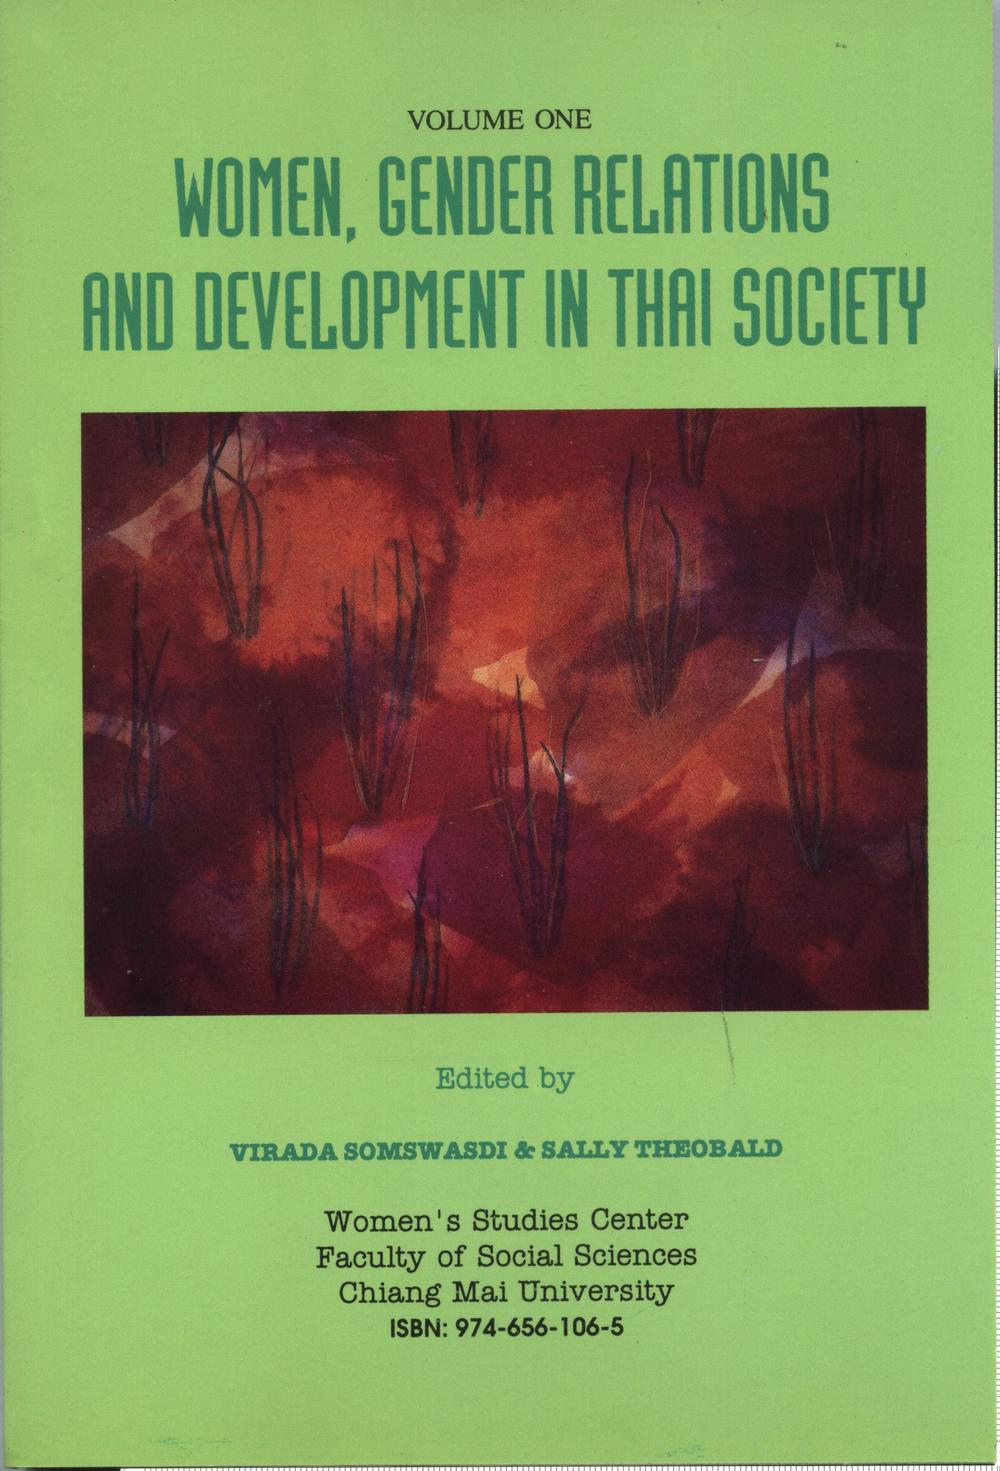 Women, gender relations and development in Thai society (Volume One)